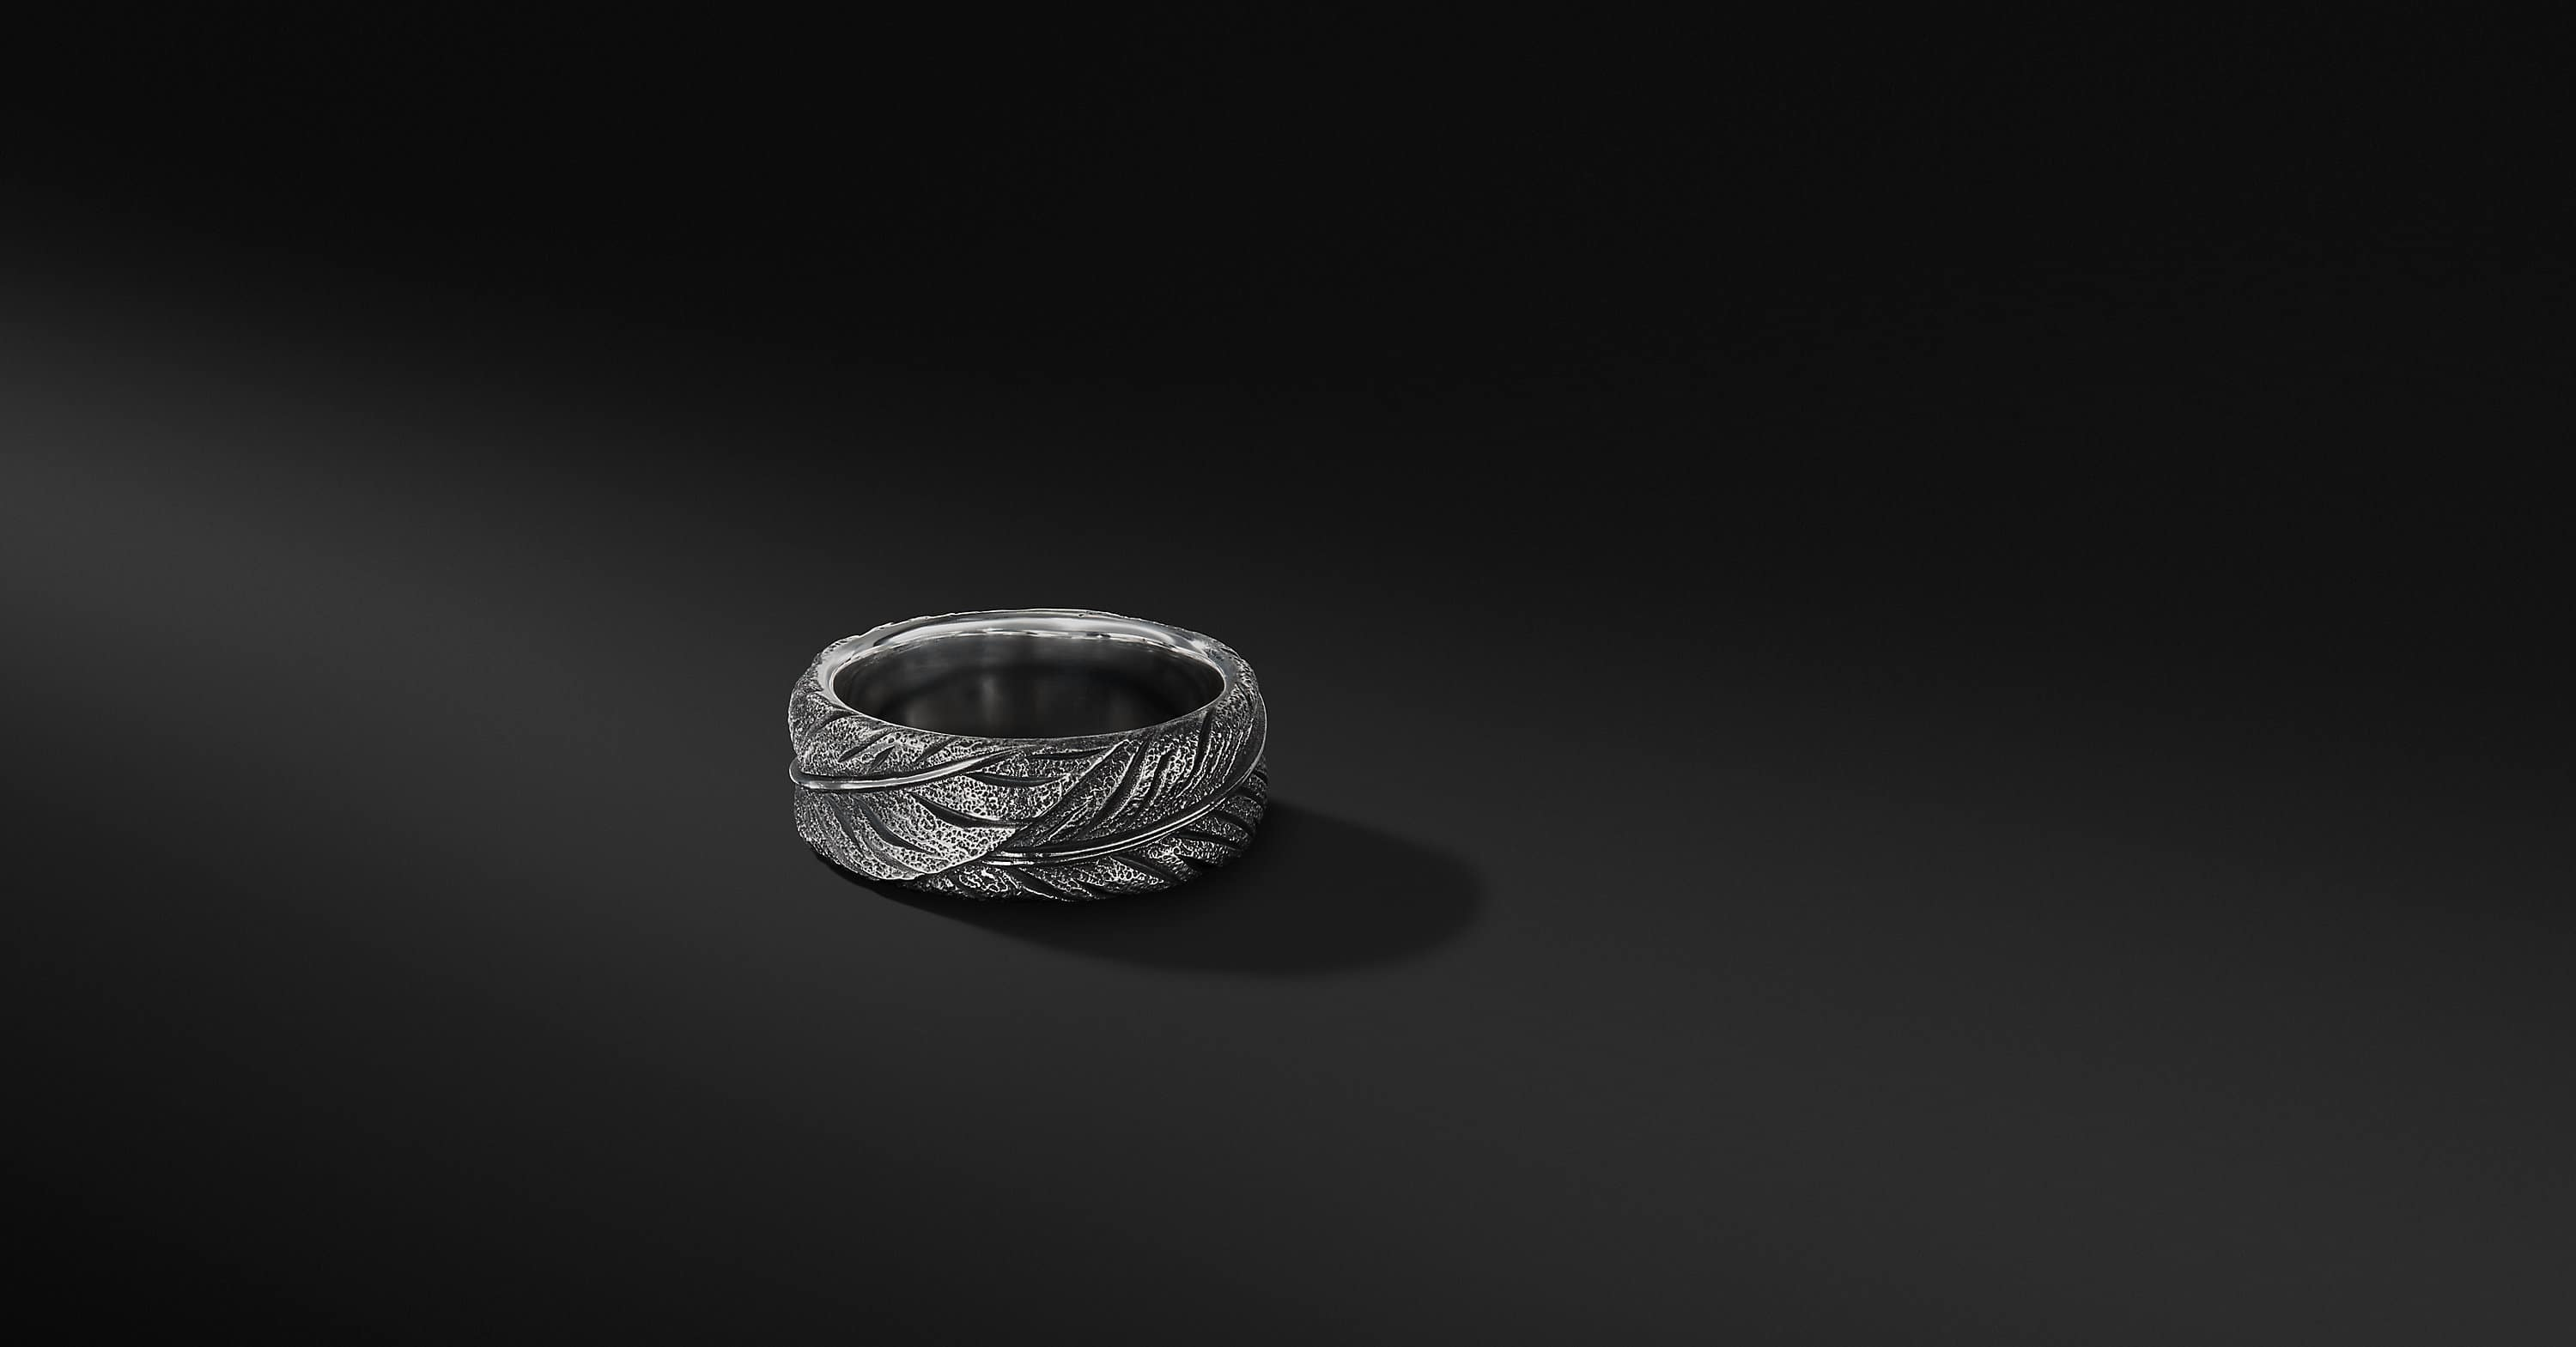 Southwest Feather Band in Sterling Silver, 9mm